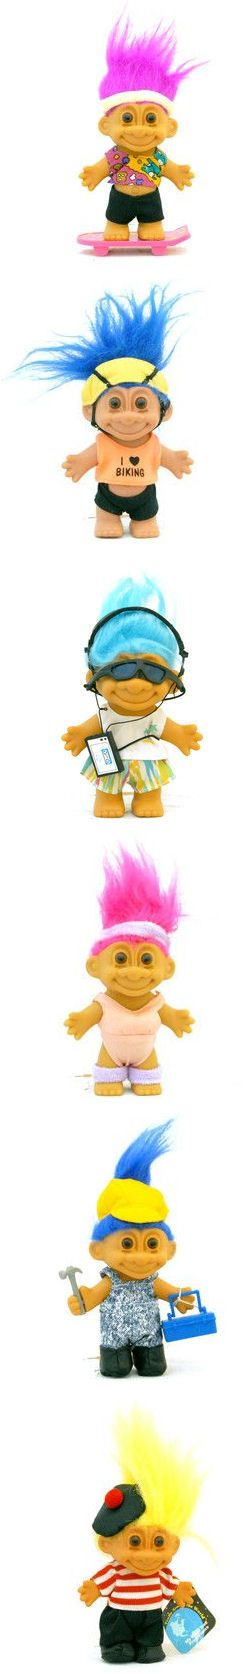 Troll Dolls ARE BACK!! lol Memories from my Childhood! #80's